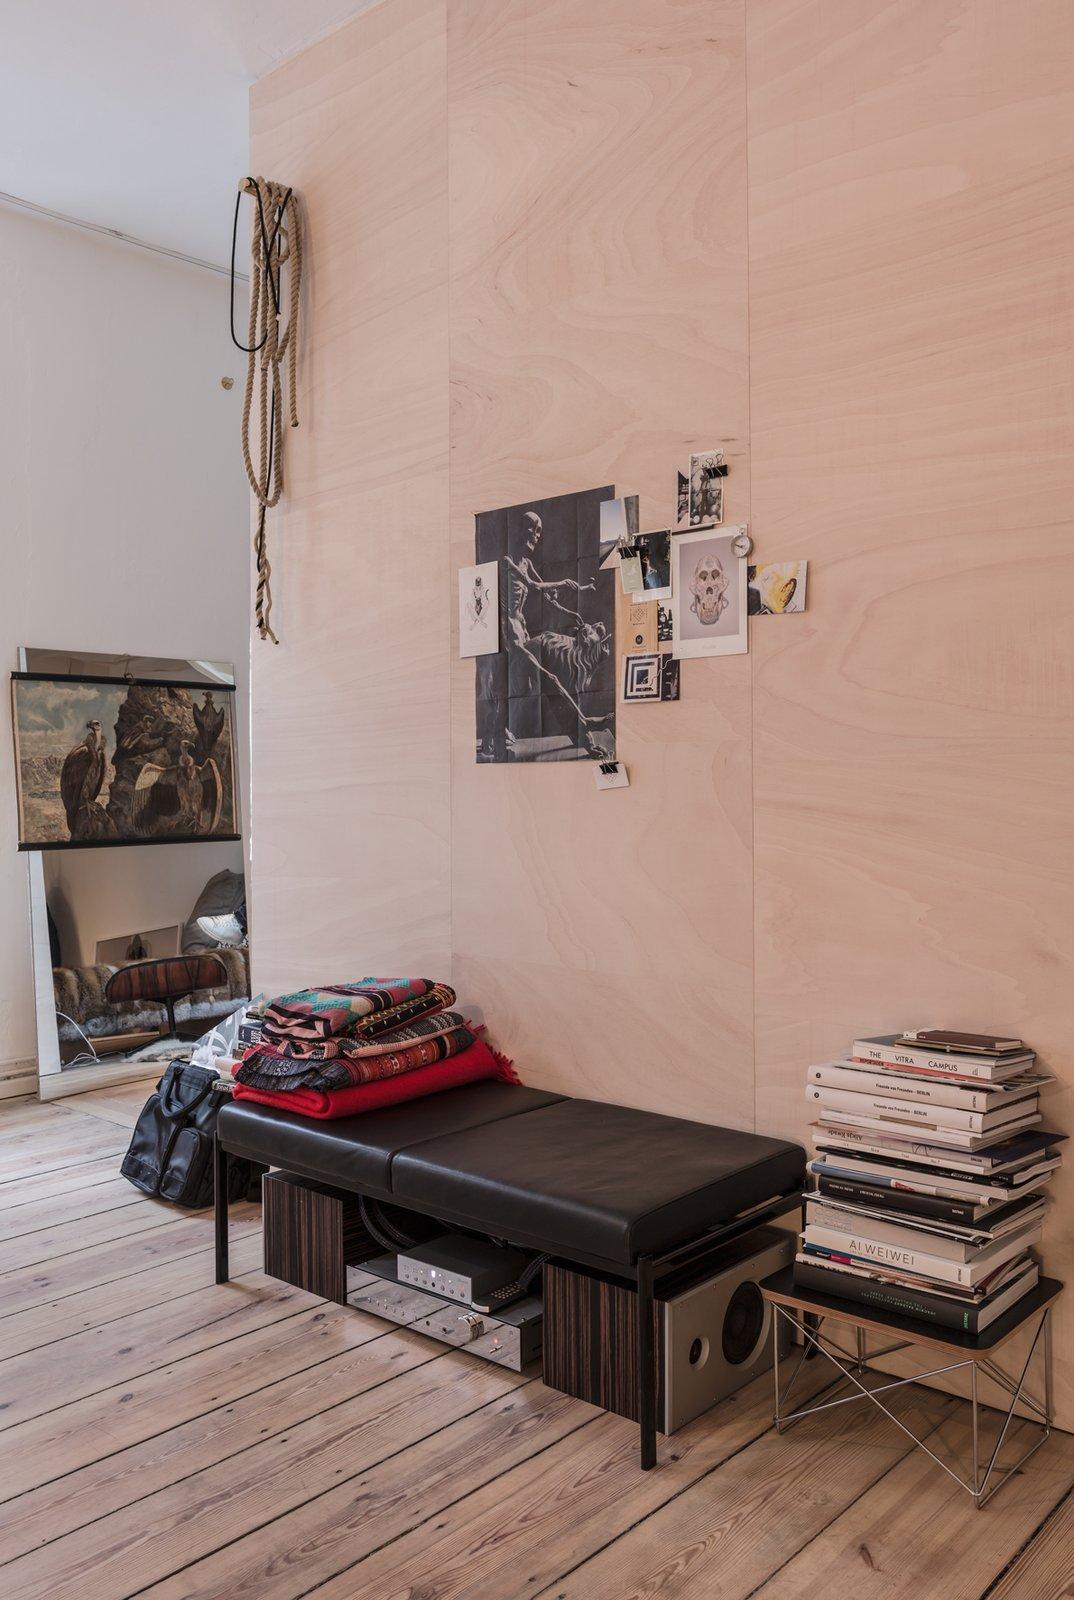 Salon of the Freunde von Freunden X Vitra Apartment  Unable to remove the center wall, architect Etienne Descloux instead created a wood-paneled centerpiece for the apartment.  Photo by Steve Herud  Photo 4 of 9 in Freunde von Freunden and Vitra's Berlin Apartment